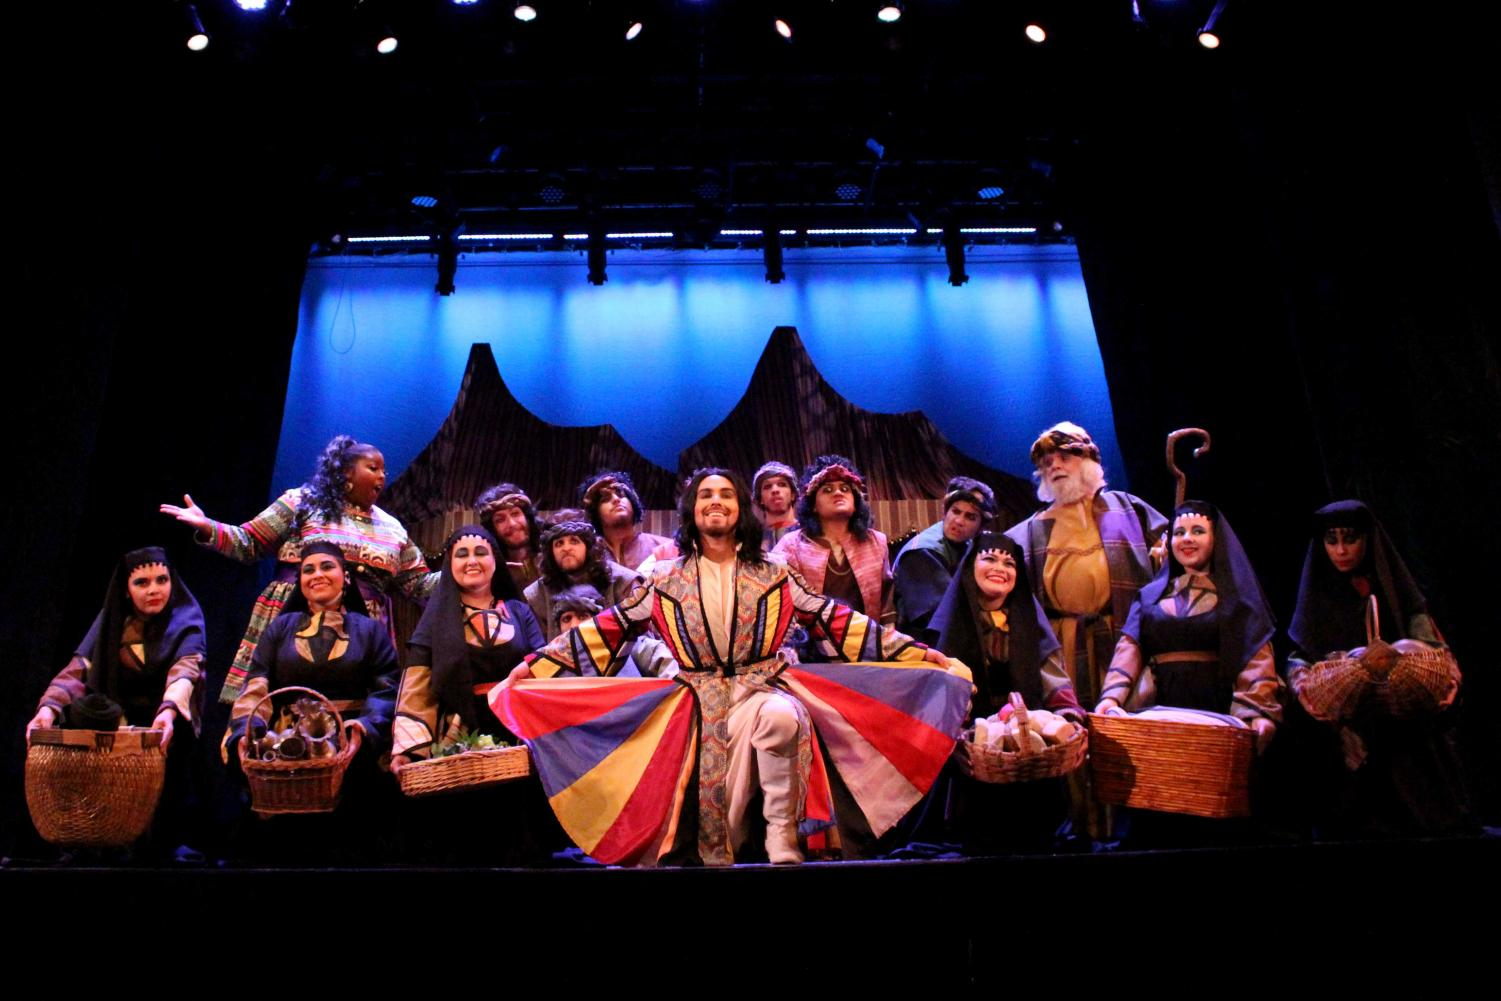 """The UTEP Dinner Theatre will celebrate its 35th anniversary by putting on stage a new version of Tim Rice's classic """" Joseph and the Amazing Technicolor Dreamcoat"""" on April 20."""